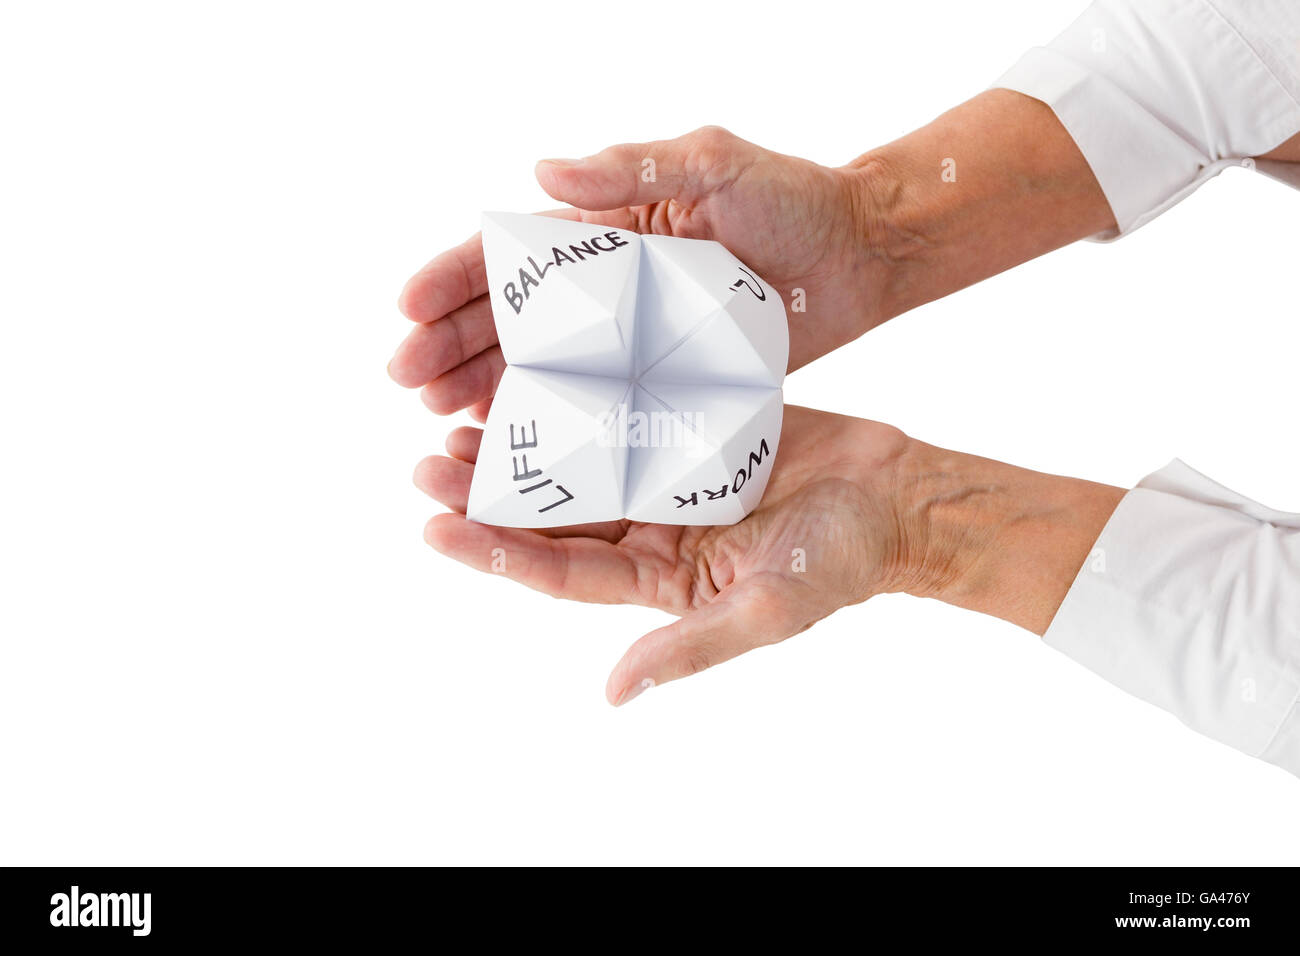 Person holding origami fortune teller - Stock Image